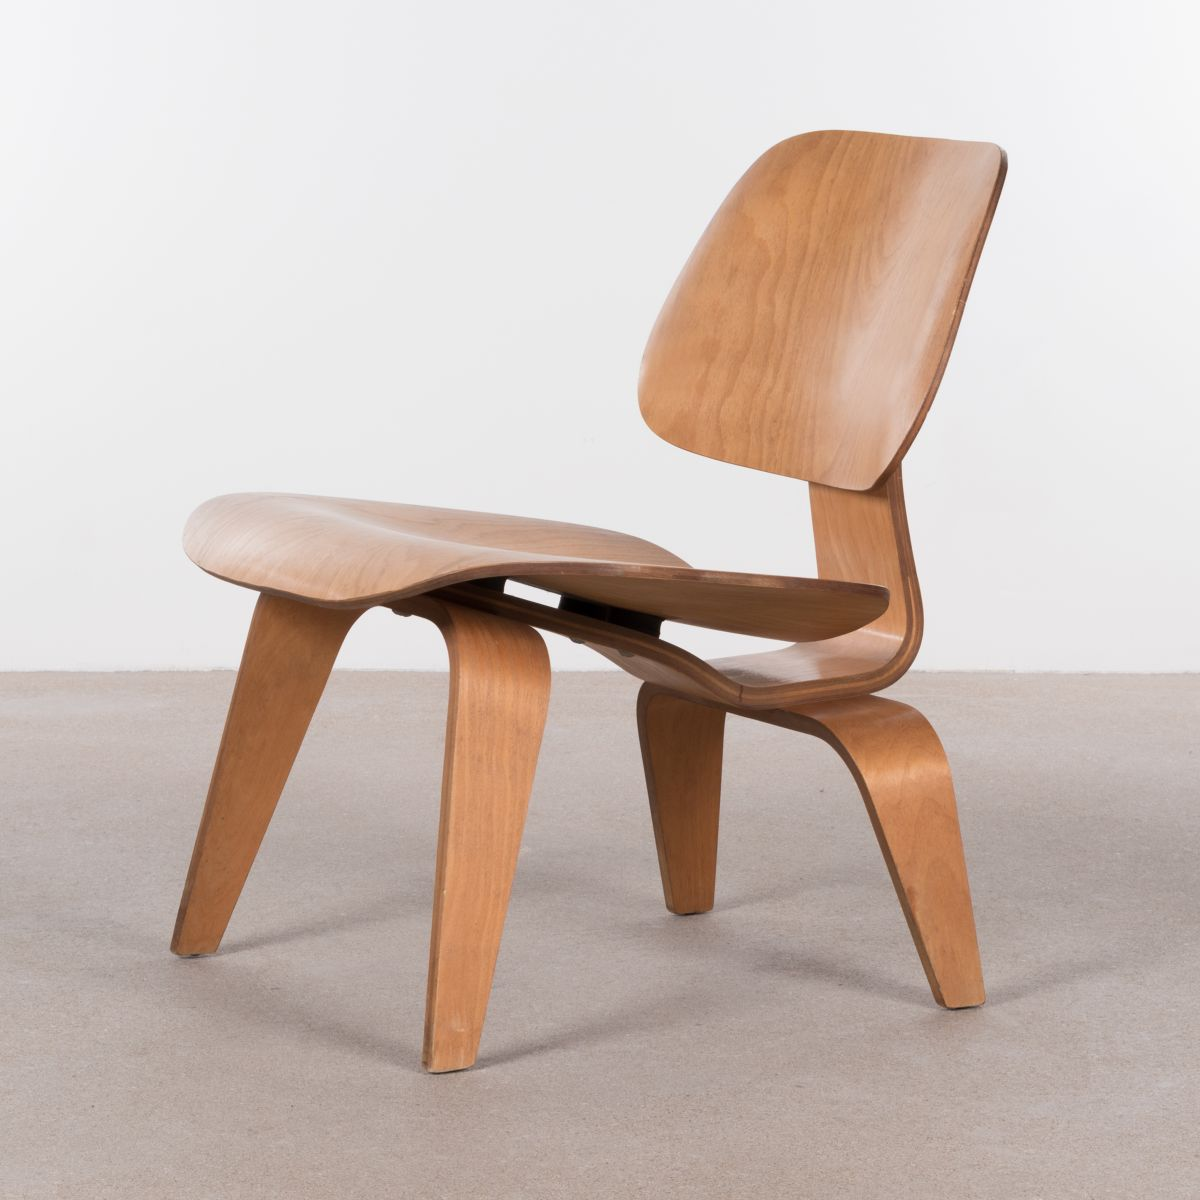 Herman miller plywood lounge chair - On Hold